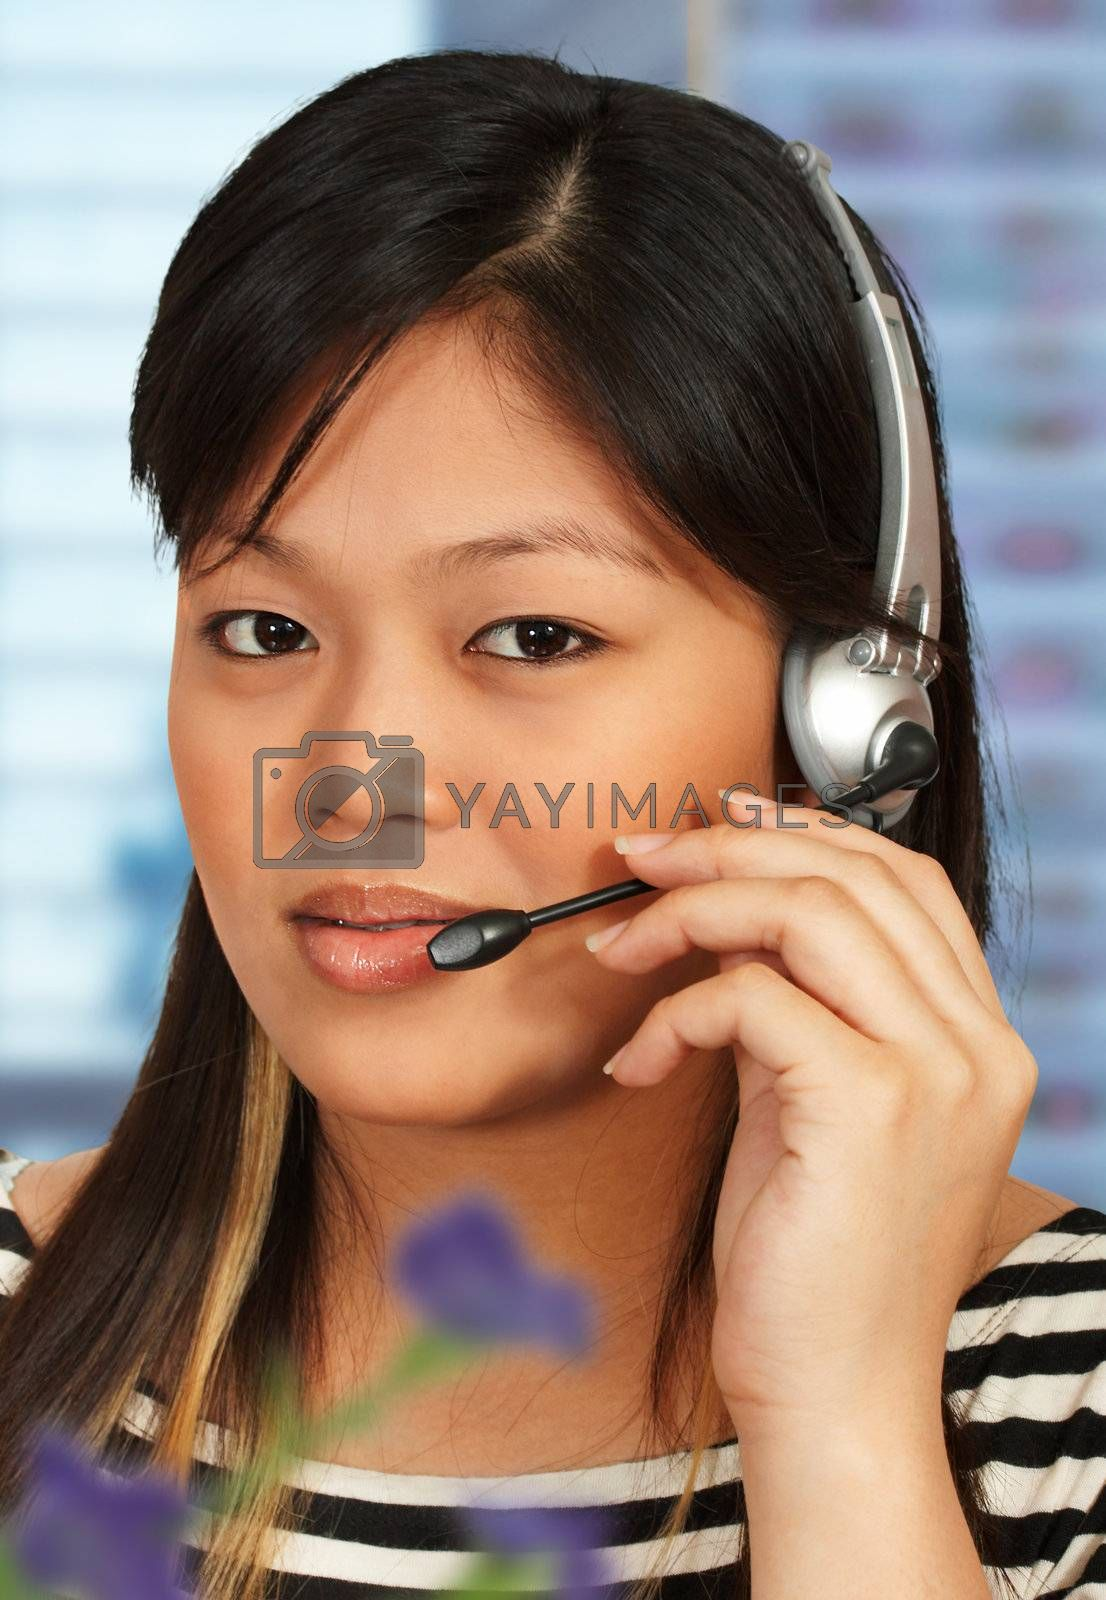 Hotline assistant talking to a customer on the phone